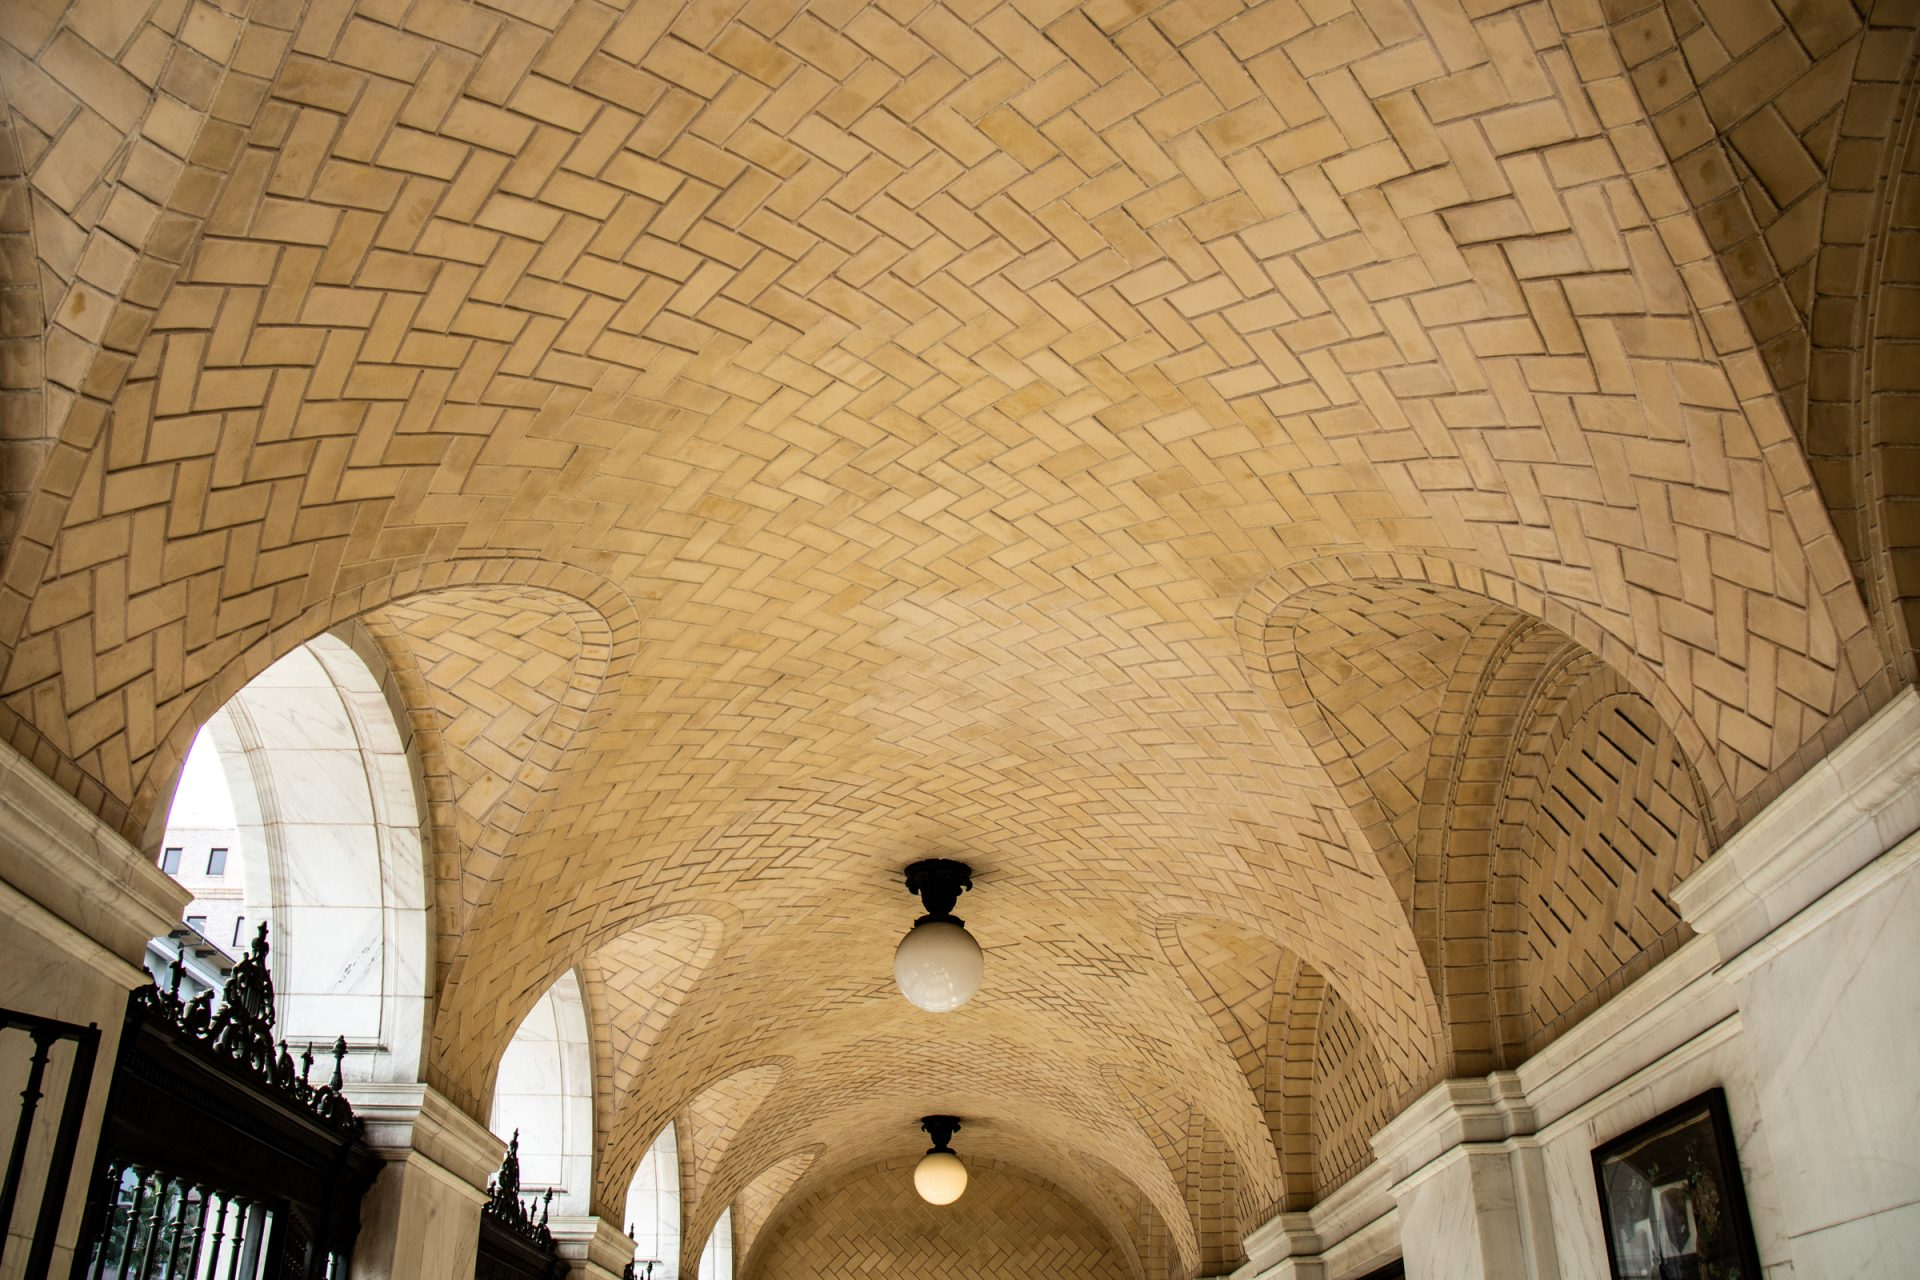 Patterned Ceiling Above Arched Passageway